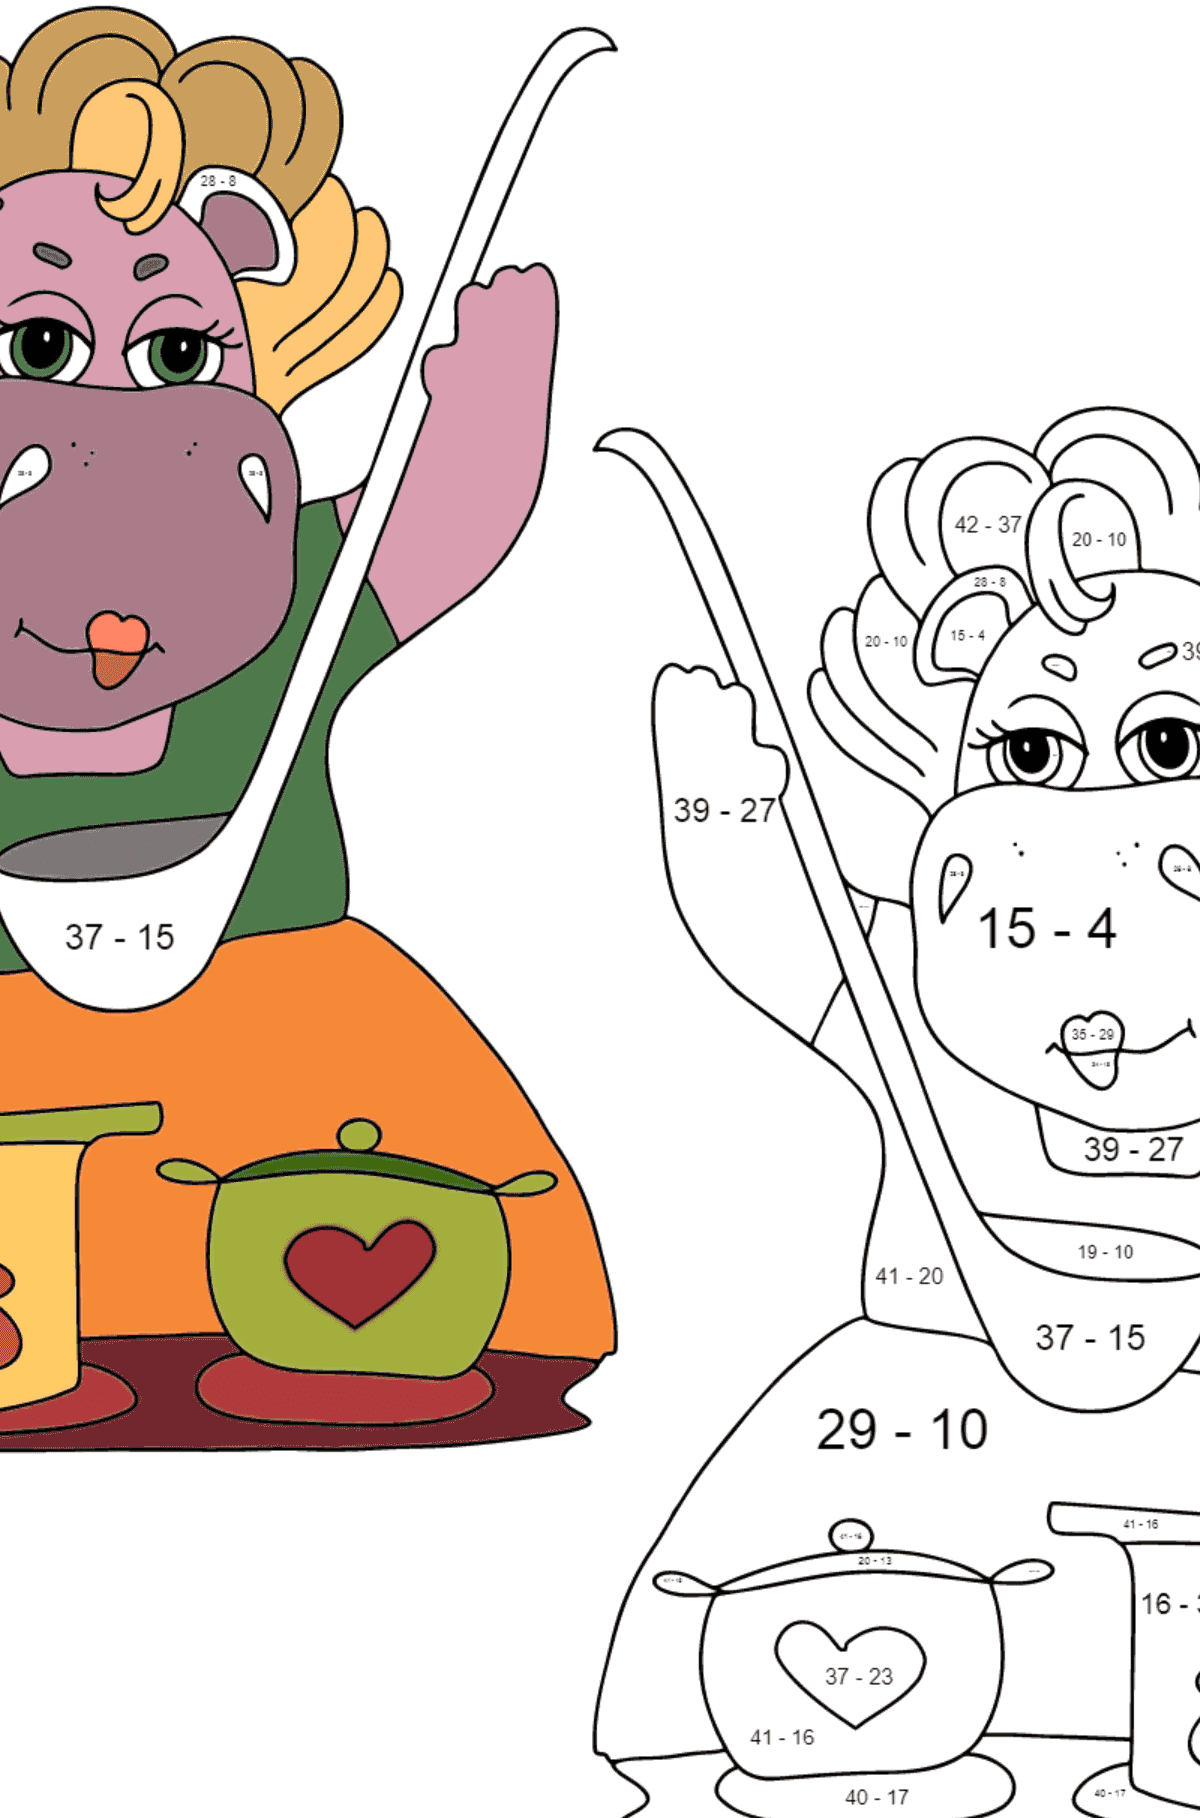 Coloring Page - Hippos are Cooking a Delicious Lunch for Children  - Color by Number Substraction